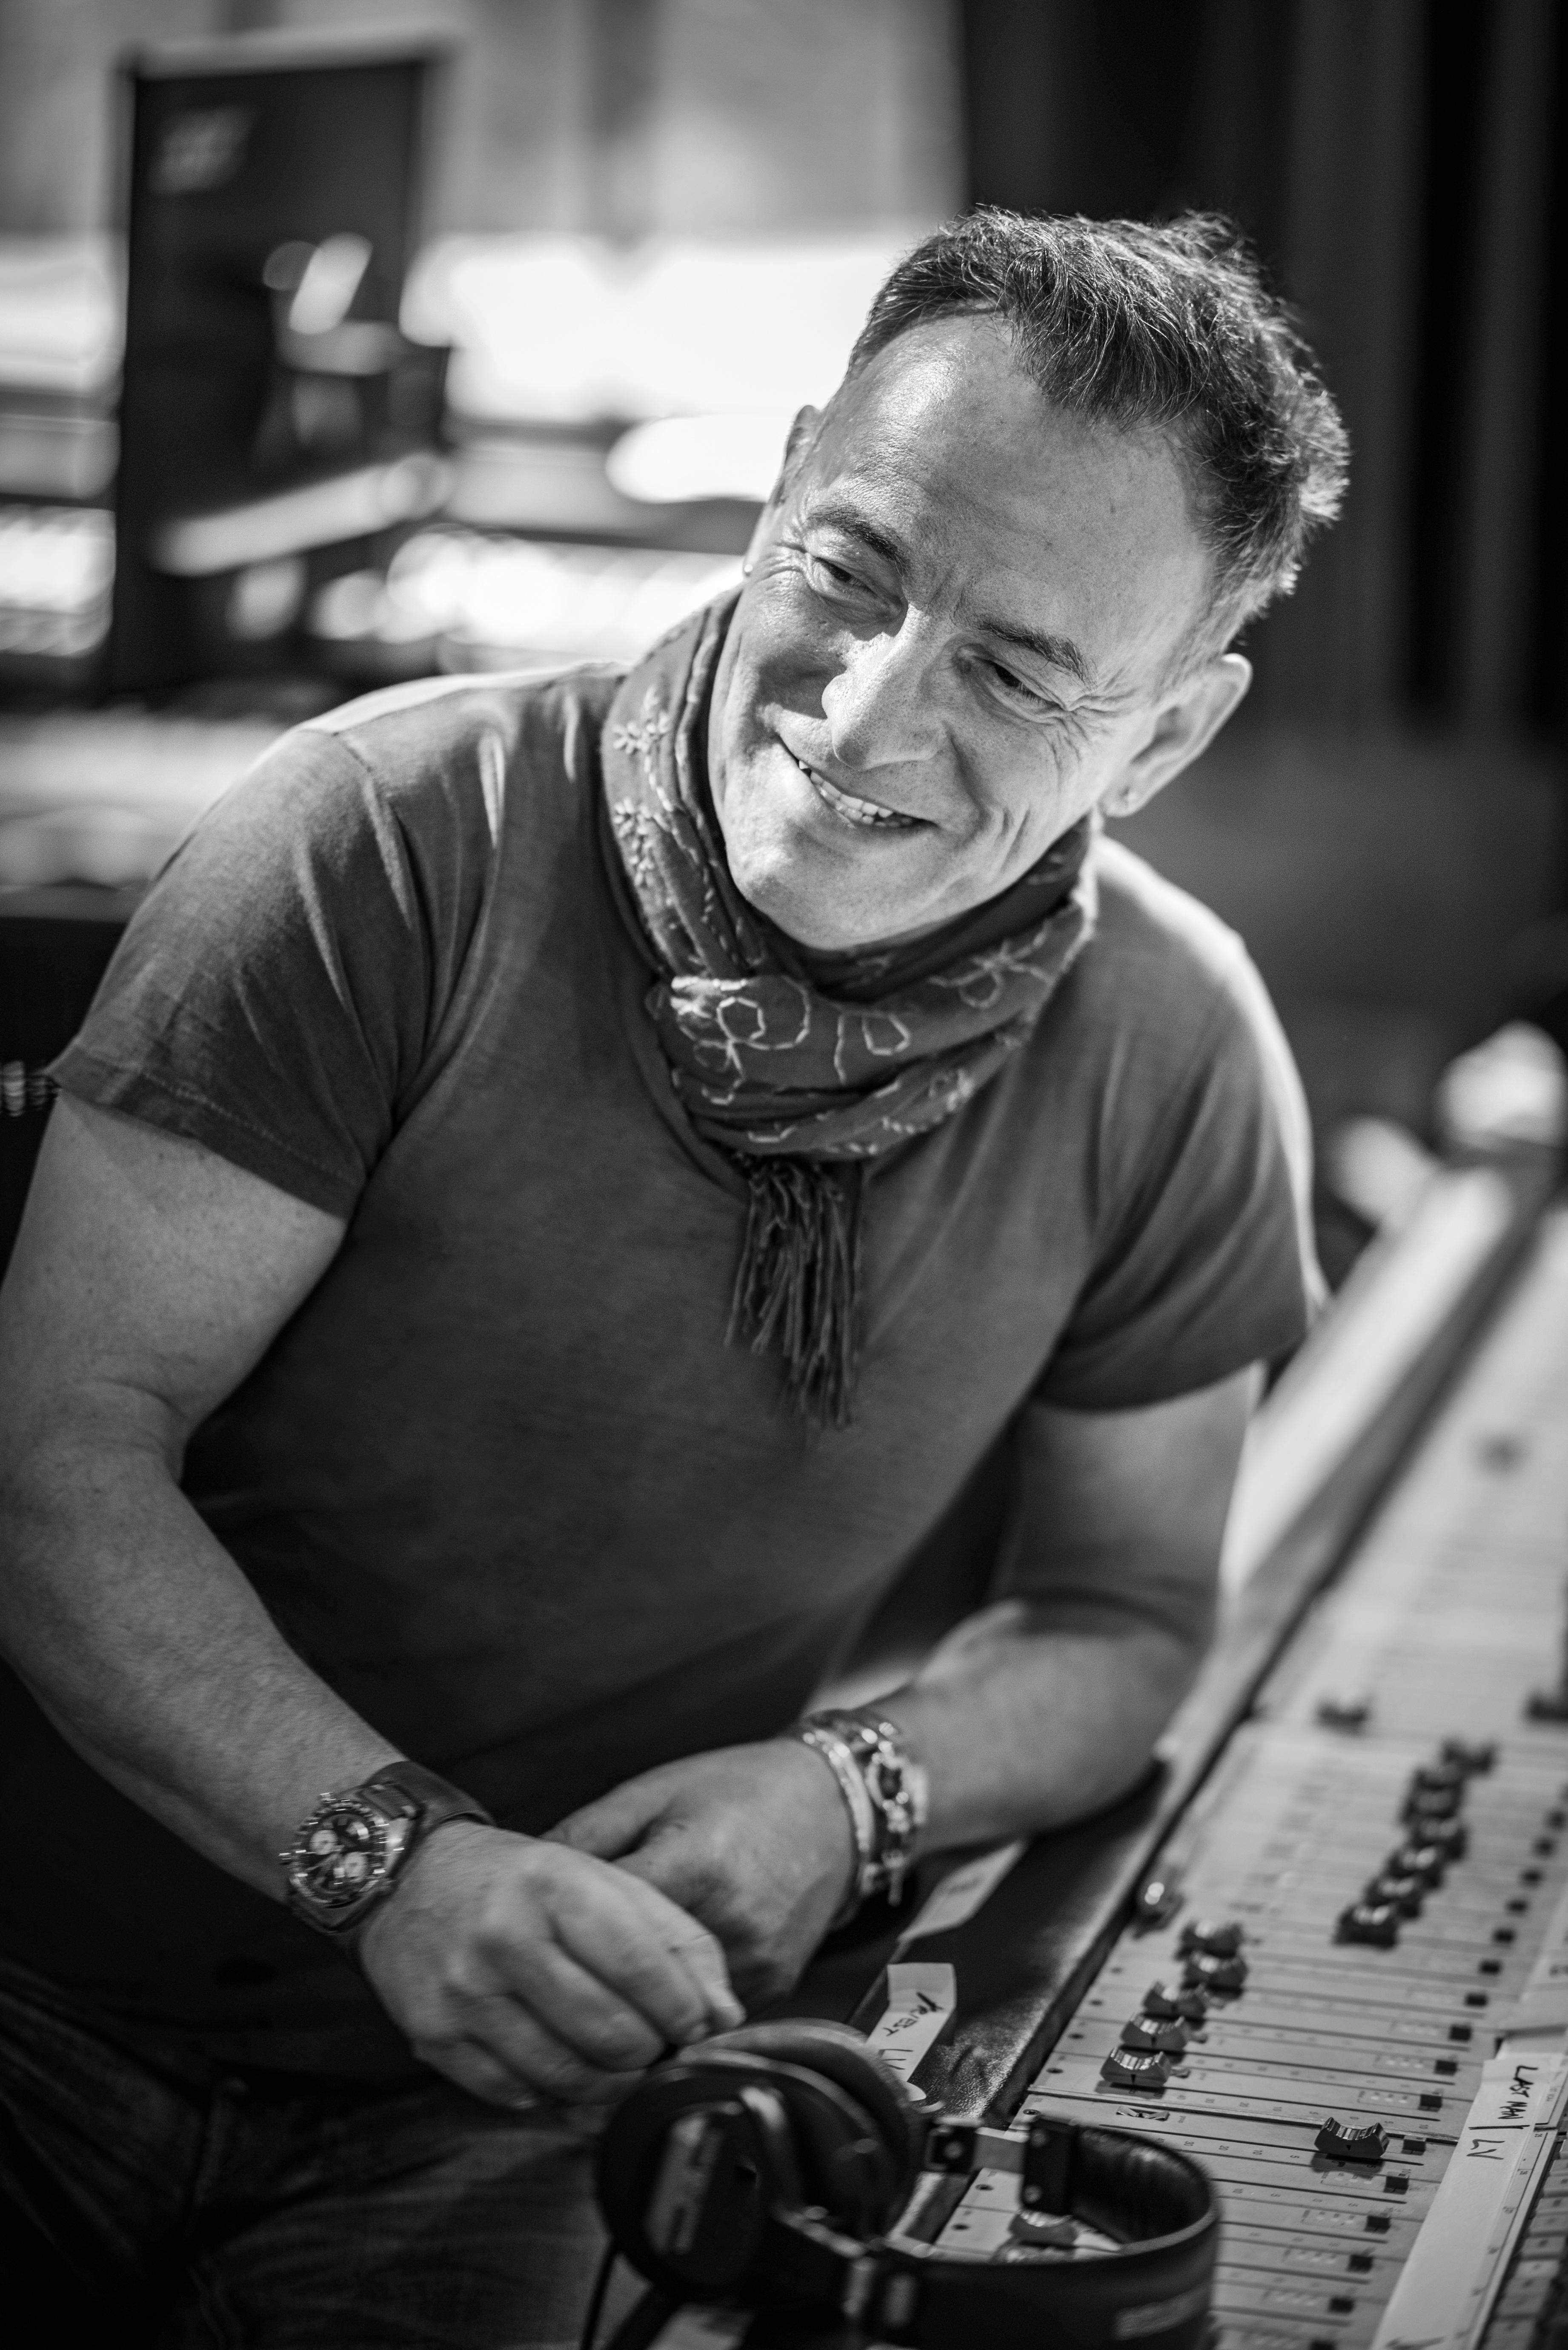 Faith rewarded for Boss fans as Bruce Springsteen DWI charges at Sandy Hook get dismissed